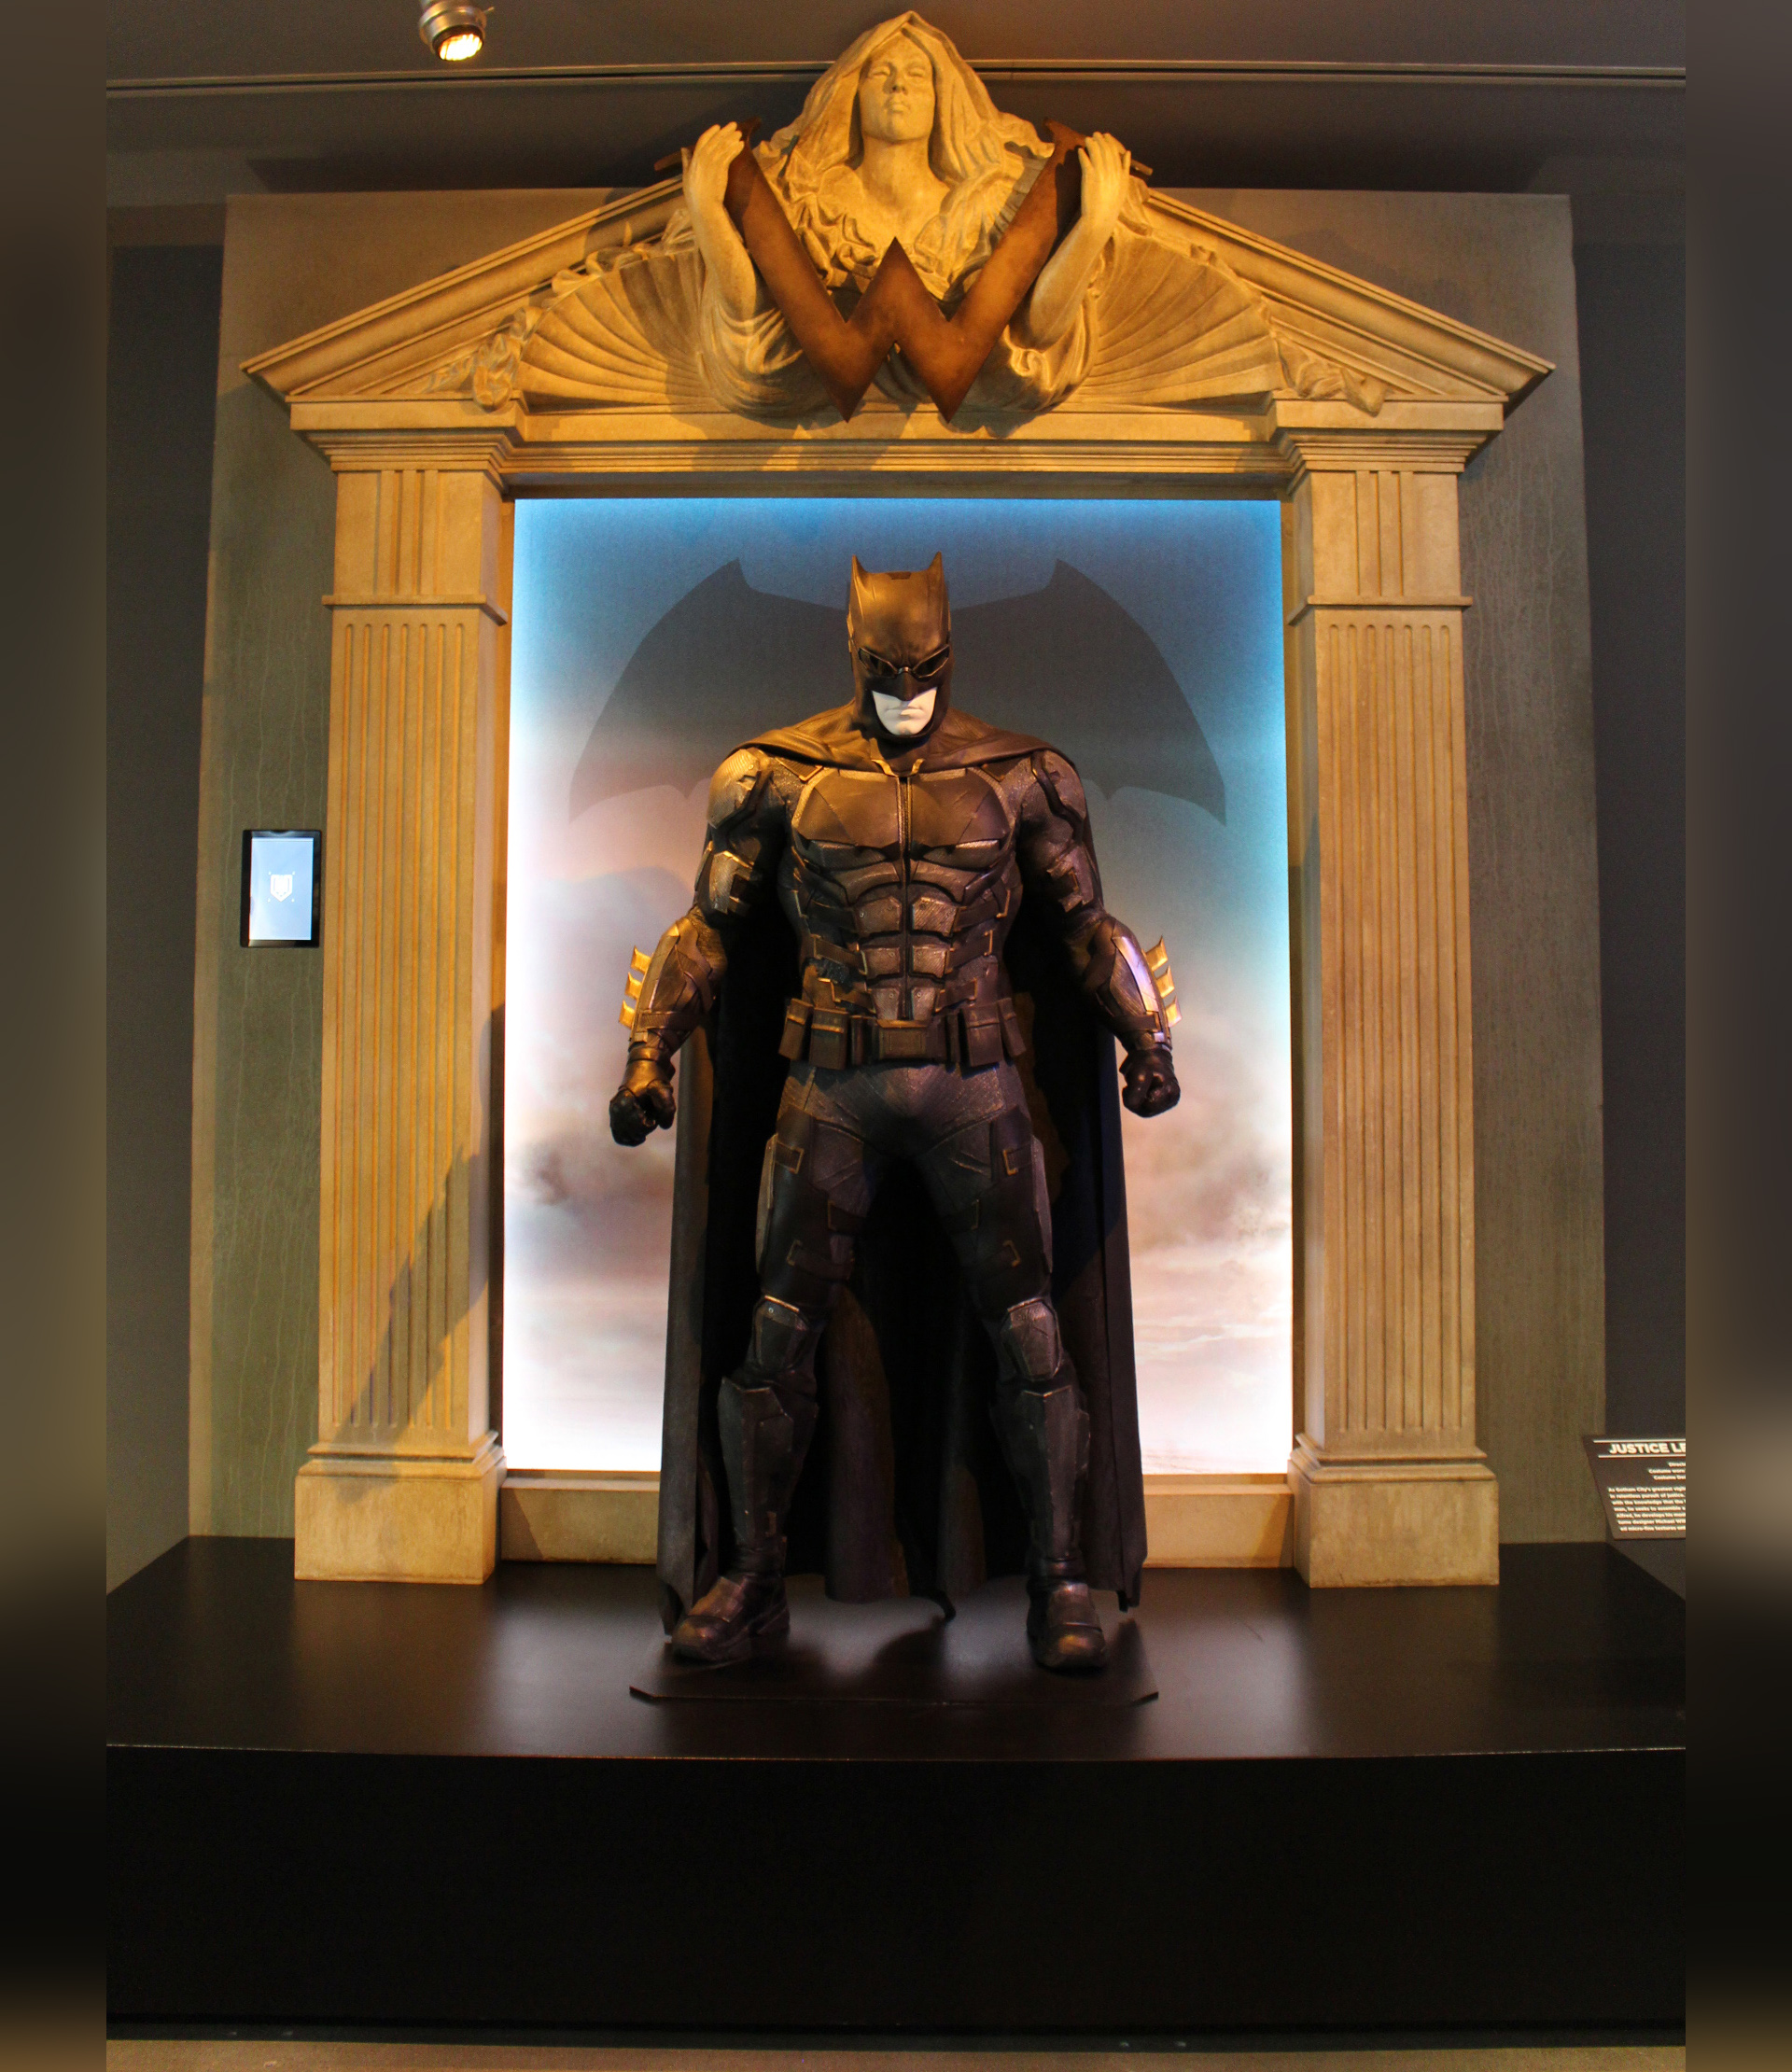 (Photo courtesy of Warner Bros. Studio Tour.)